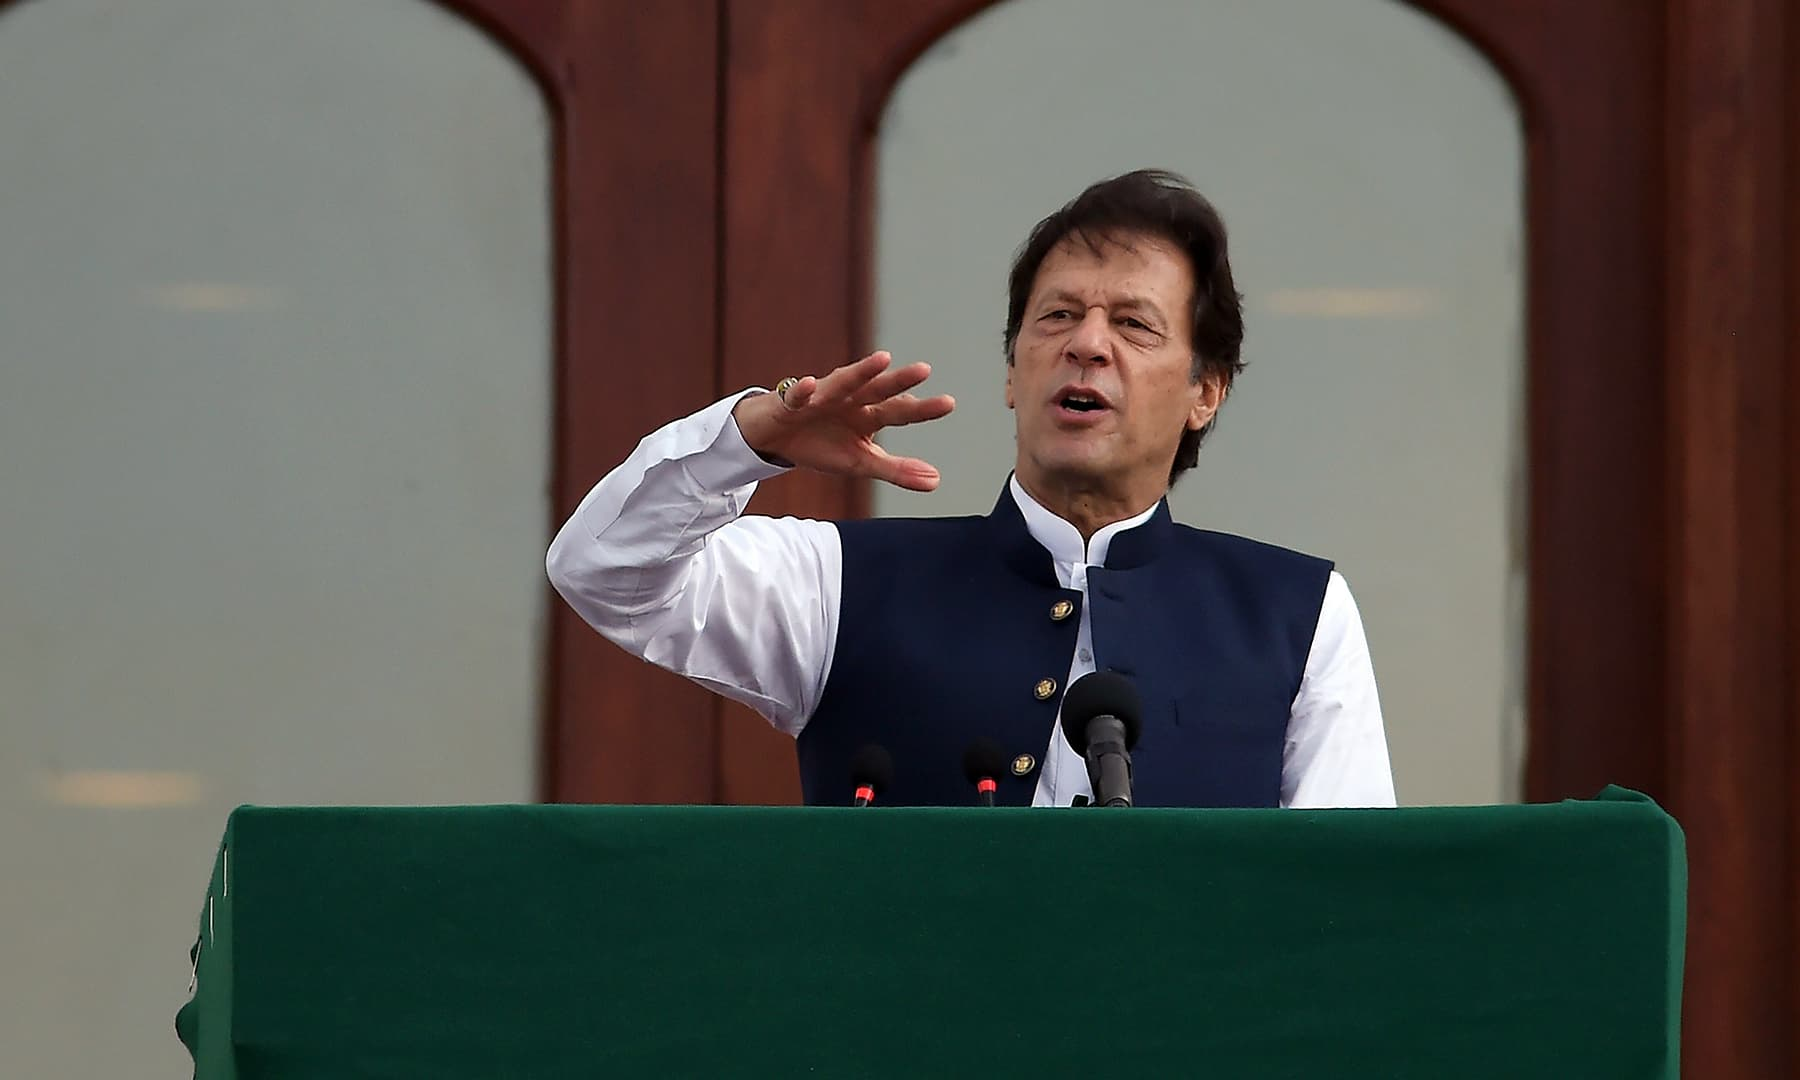 Prime Minister Imran Khan addresses the nation outside the Prime Minister's Office in Islamabad on August 30. — AFP